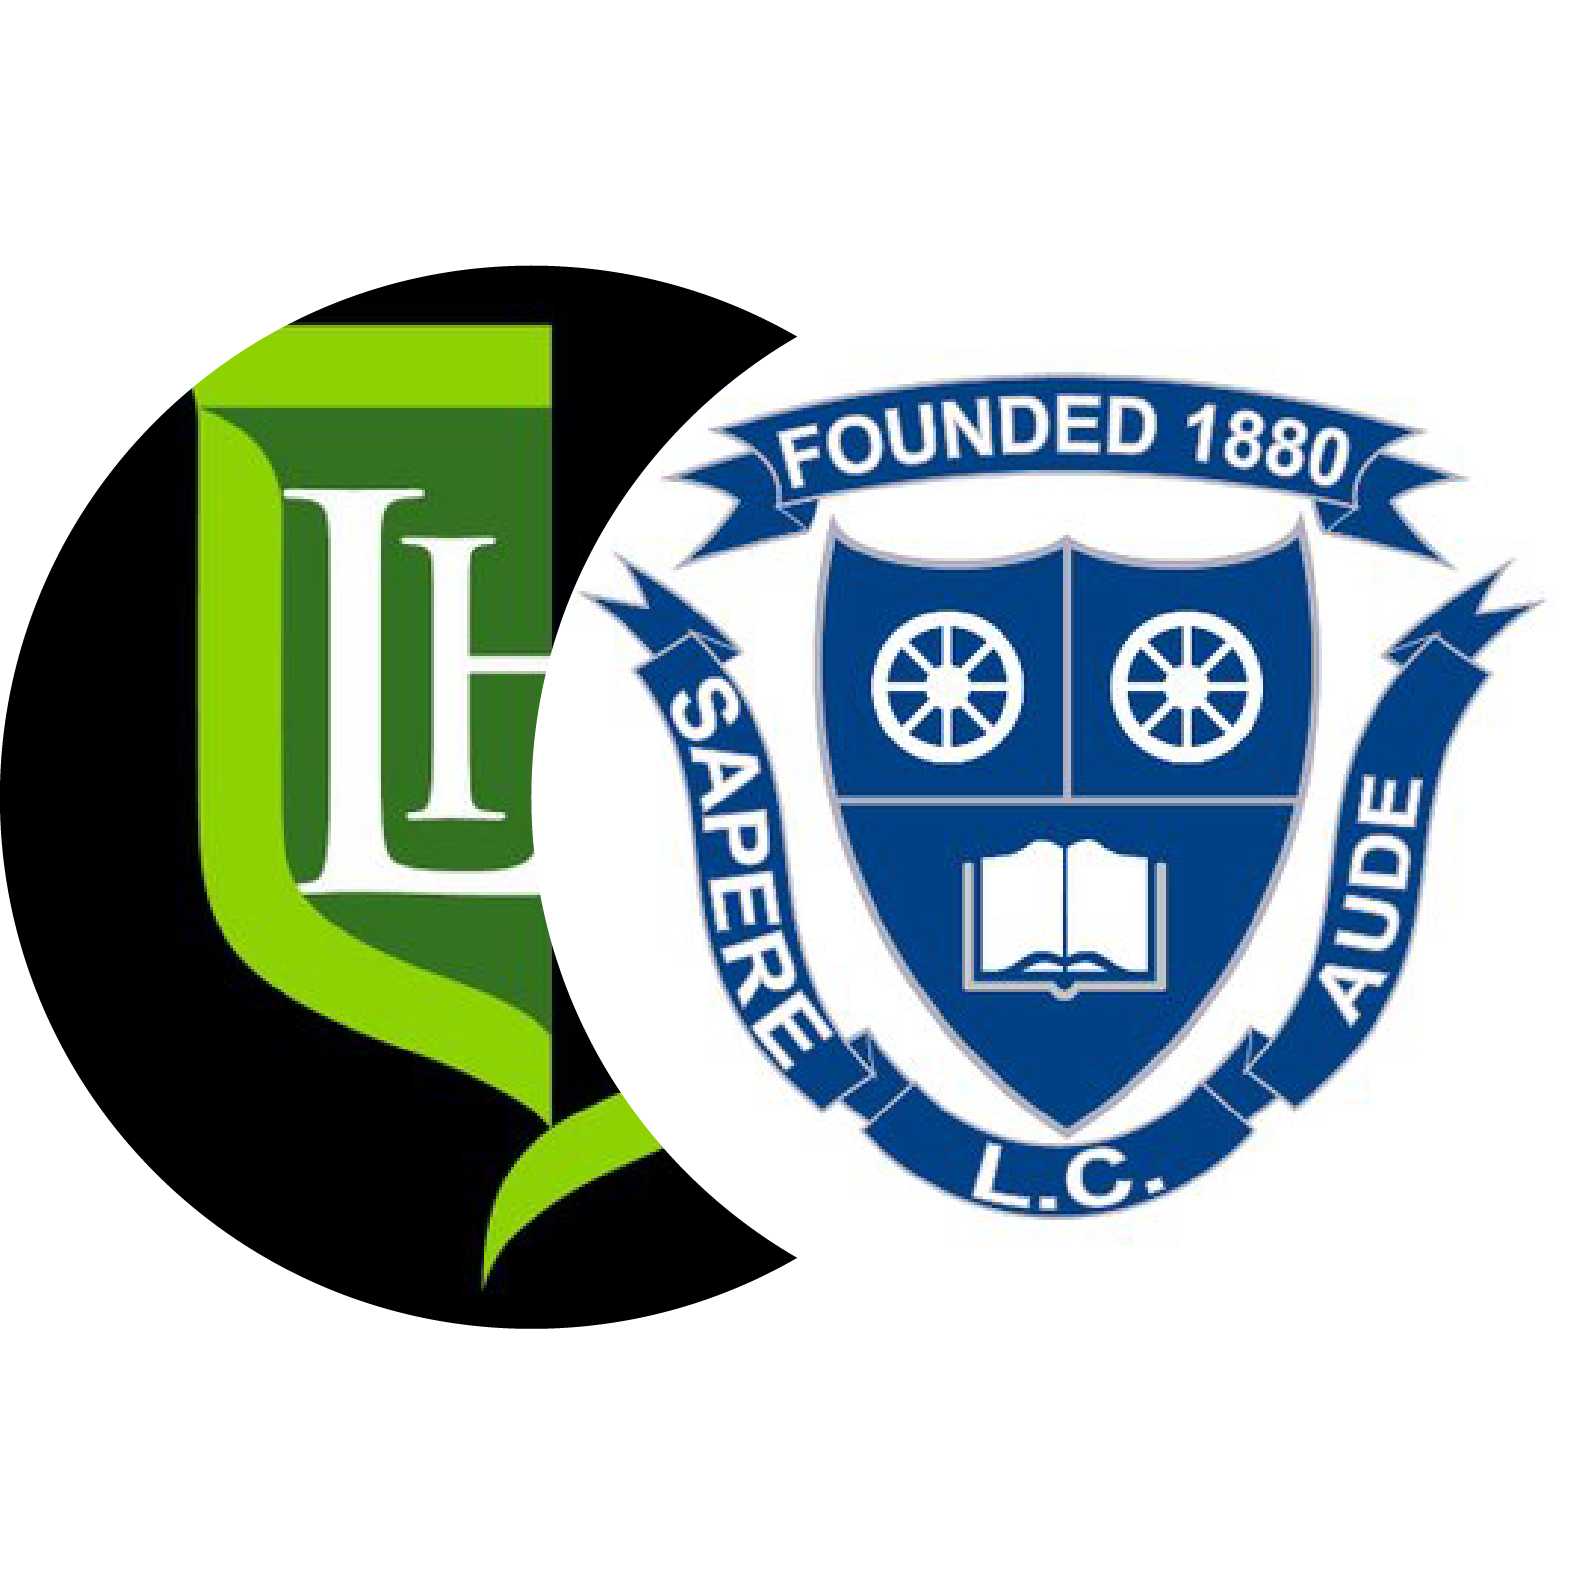 Lutterworth High School & Lutterworth College